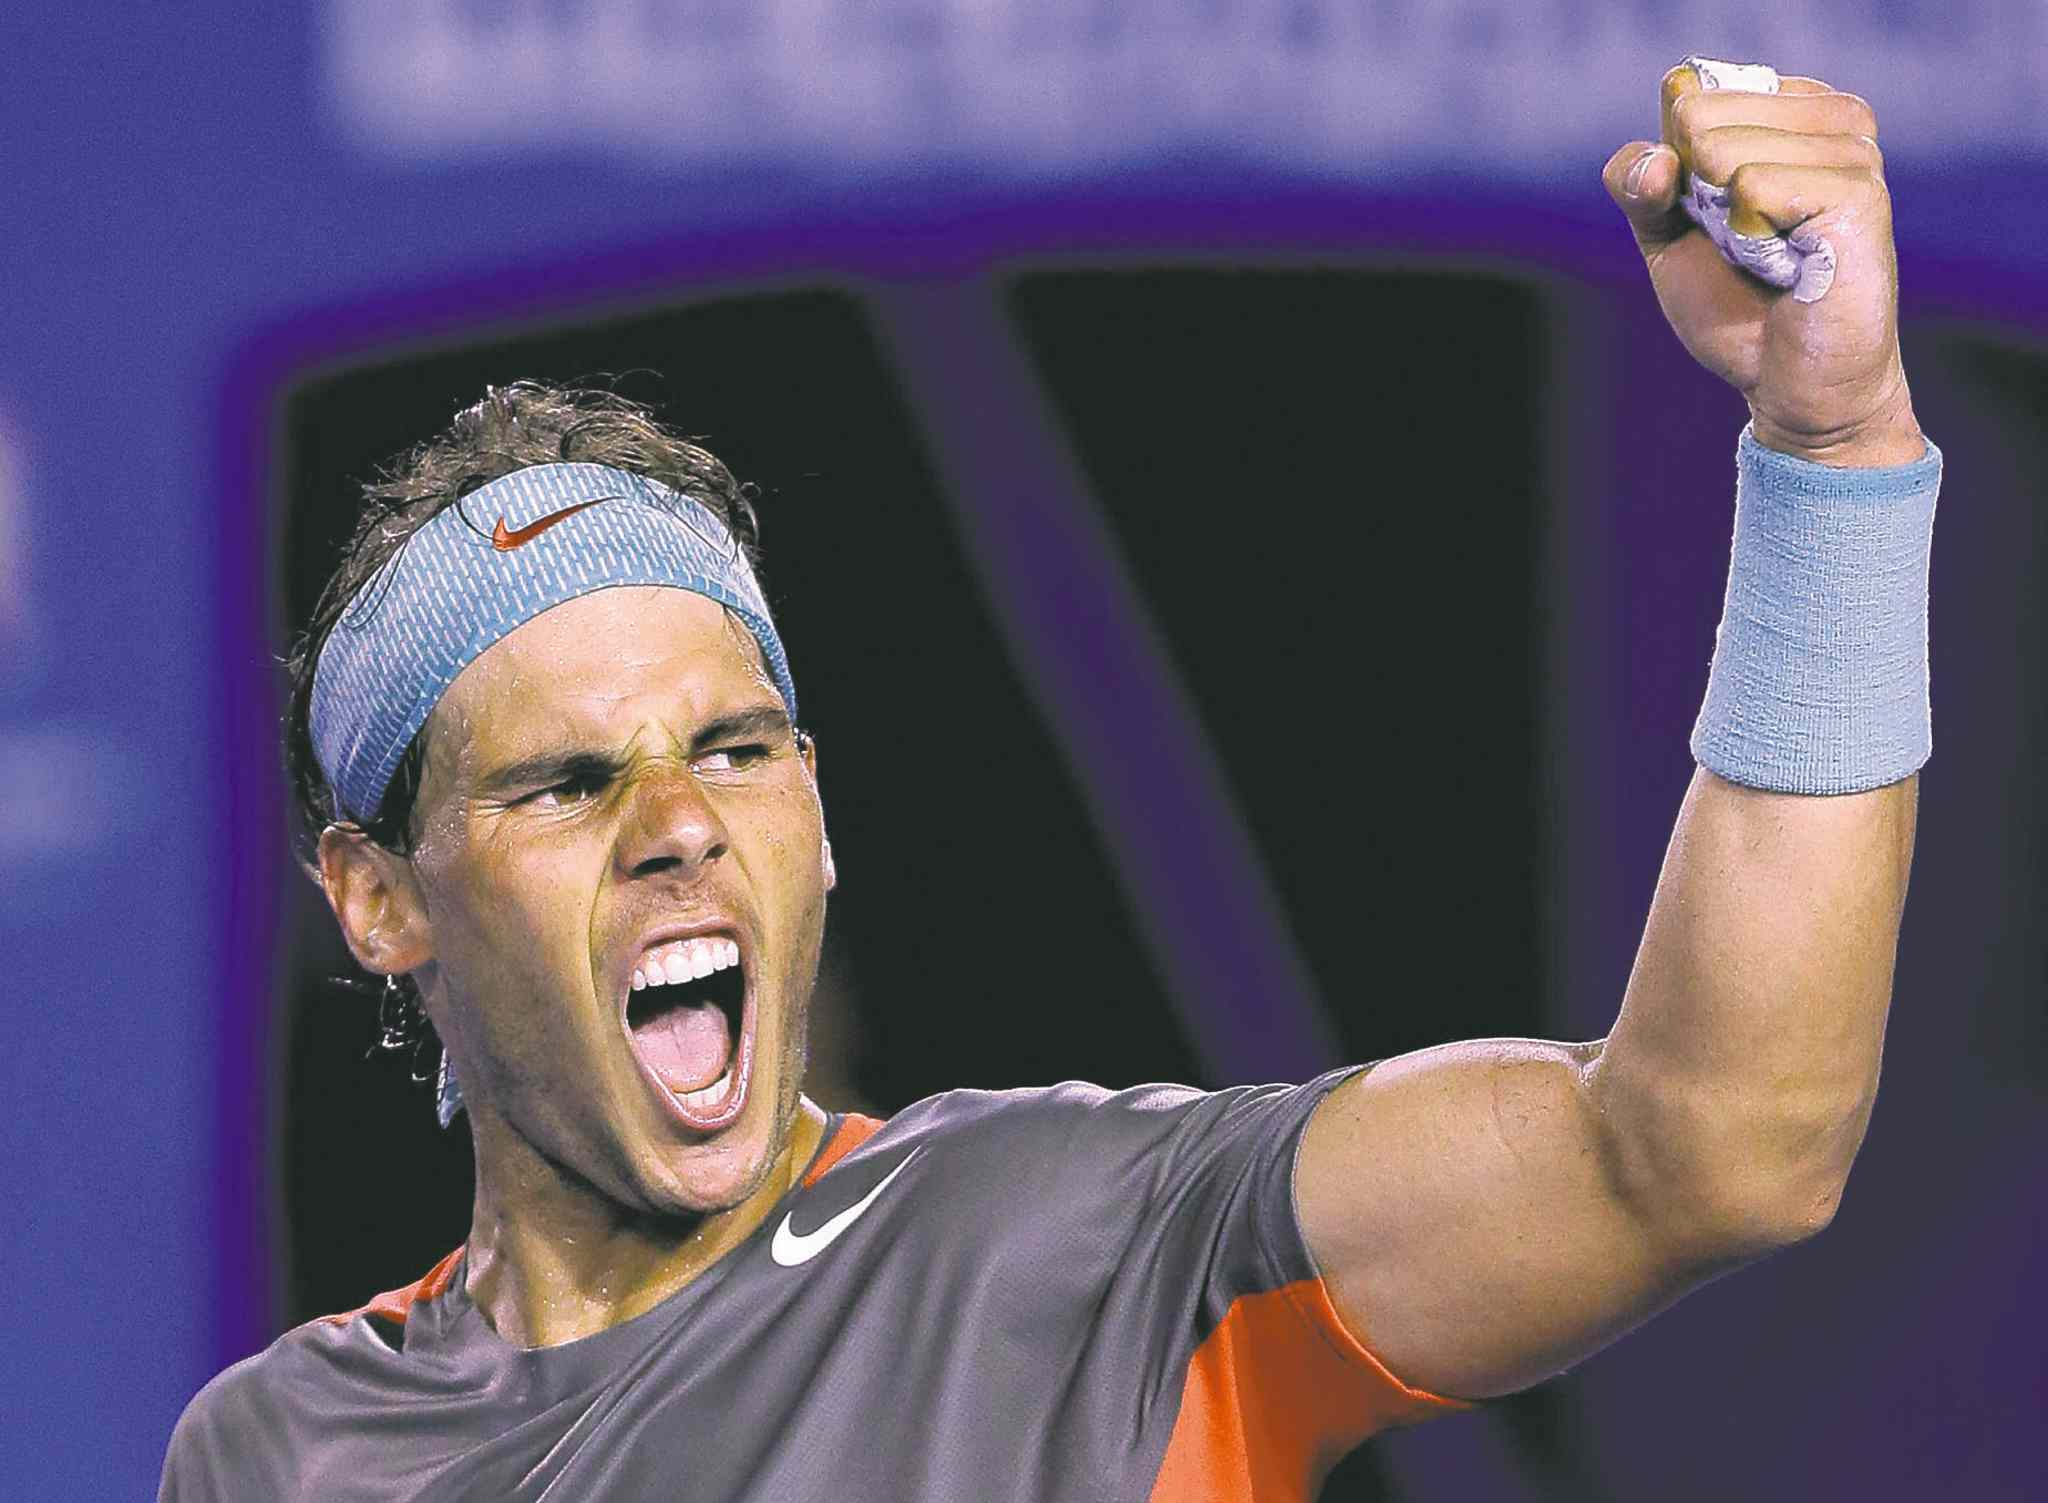 Rafael Nadal of Spain bellows in triumph after defeating Roger Federer during their Australian Open semifinal.